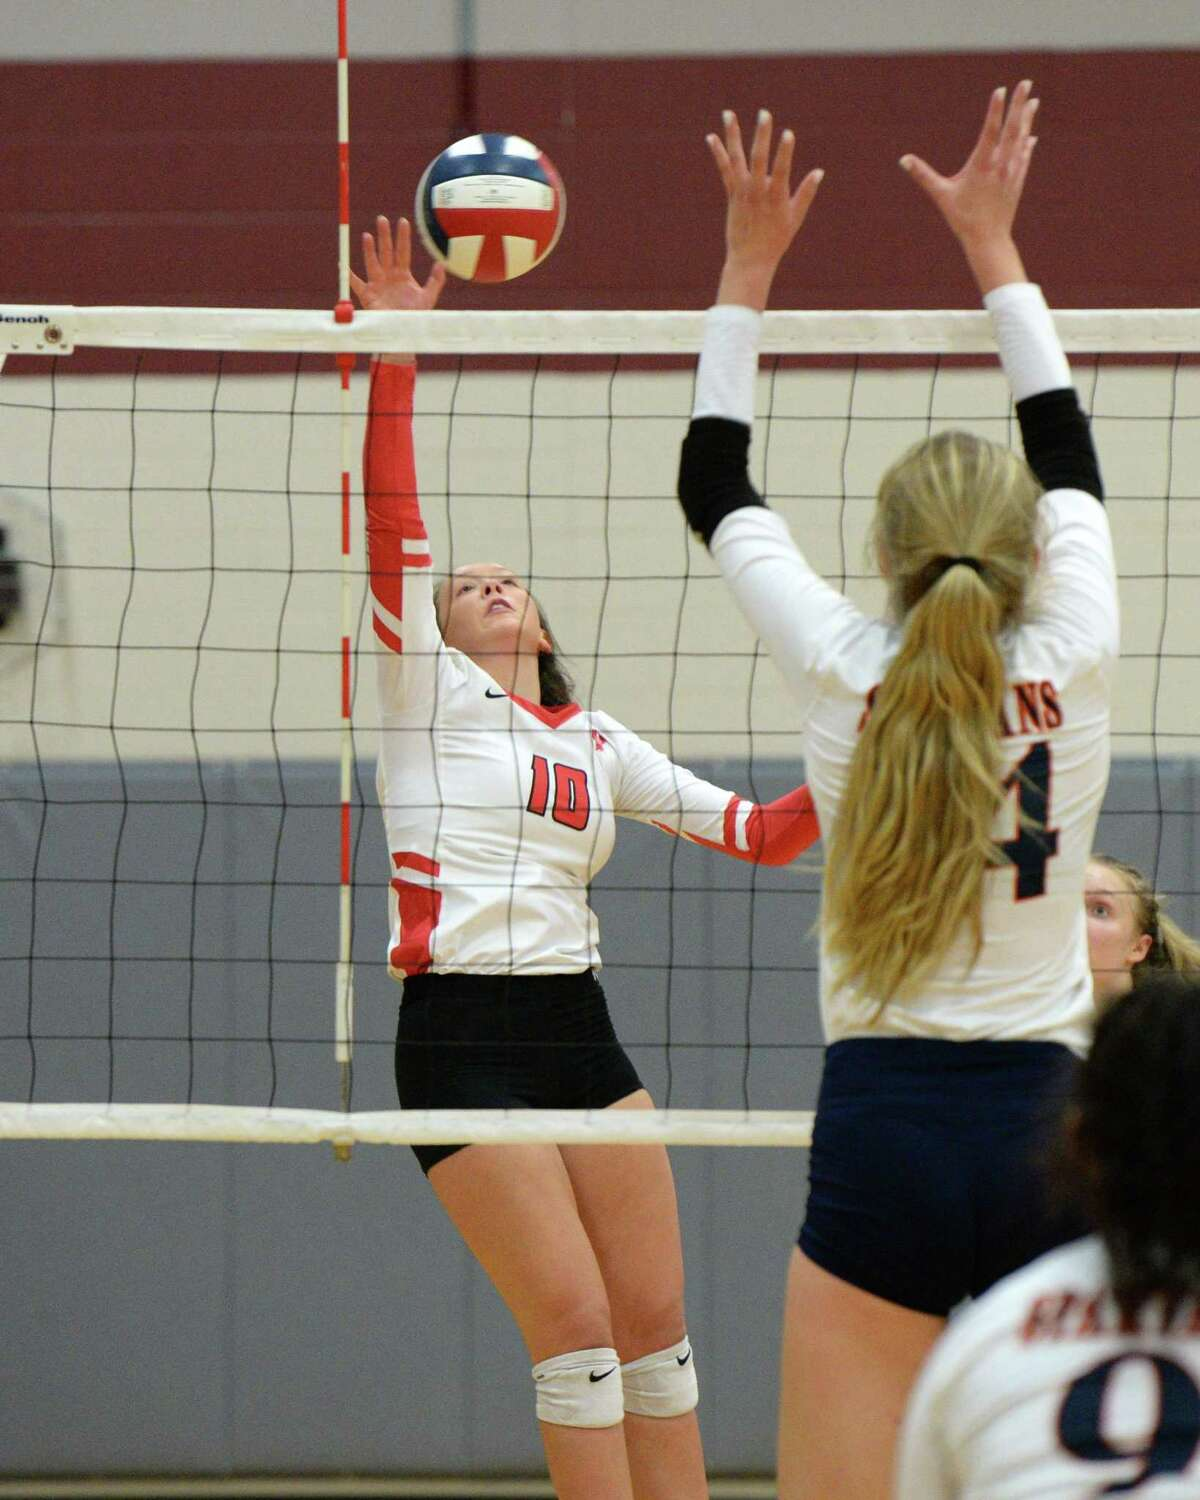 Abby Sherman (10) of Katy attempts a shot past Ally Batenhorst (14) of Seven Lakes during the second set of a volleyball match between the Seven Lakes Spartans and the Katy Tigers on Friday, August 9, 2019 at Cinco Ranch HS, Katy, TX.